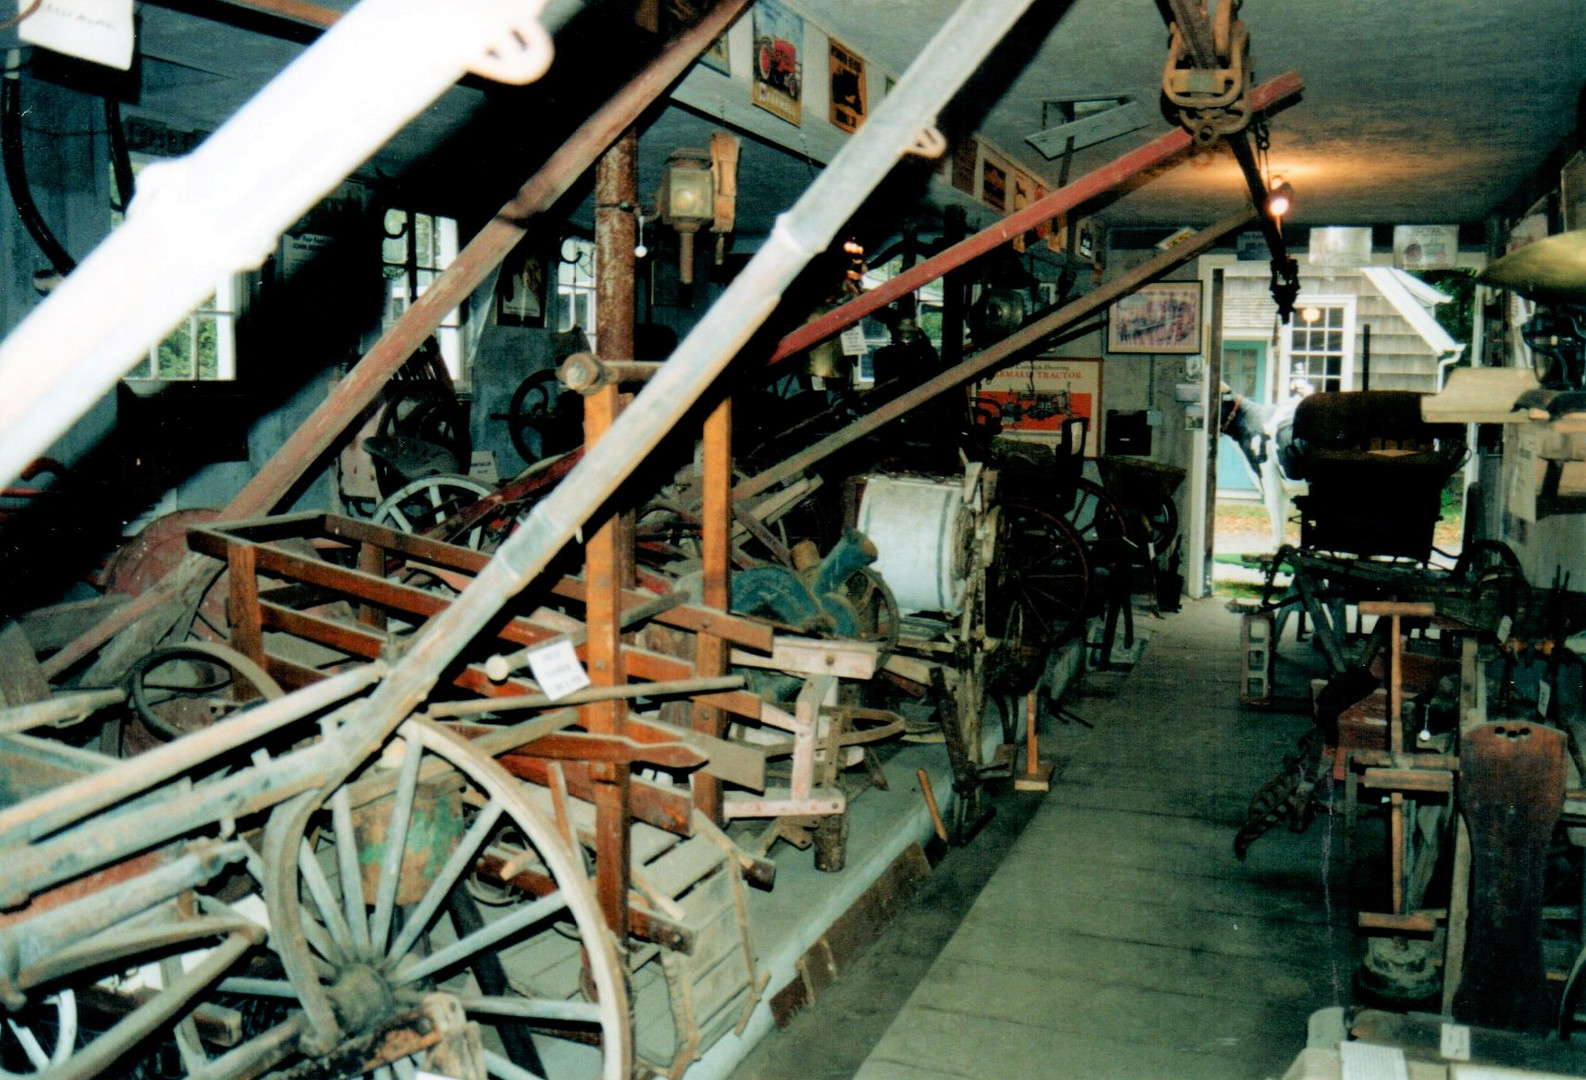 Antique farming impliments in the museum